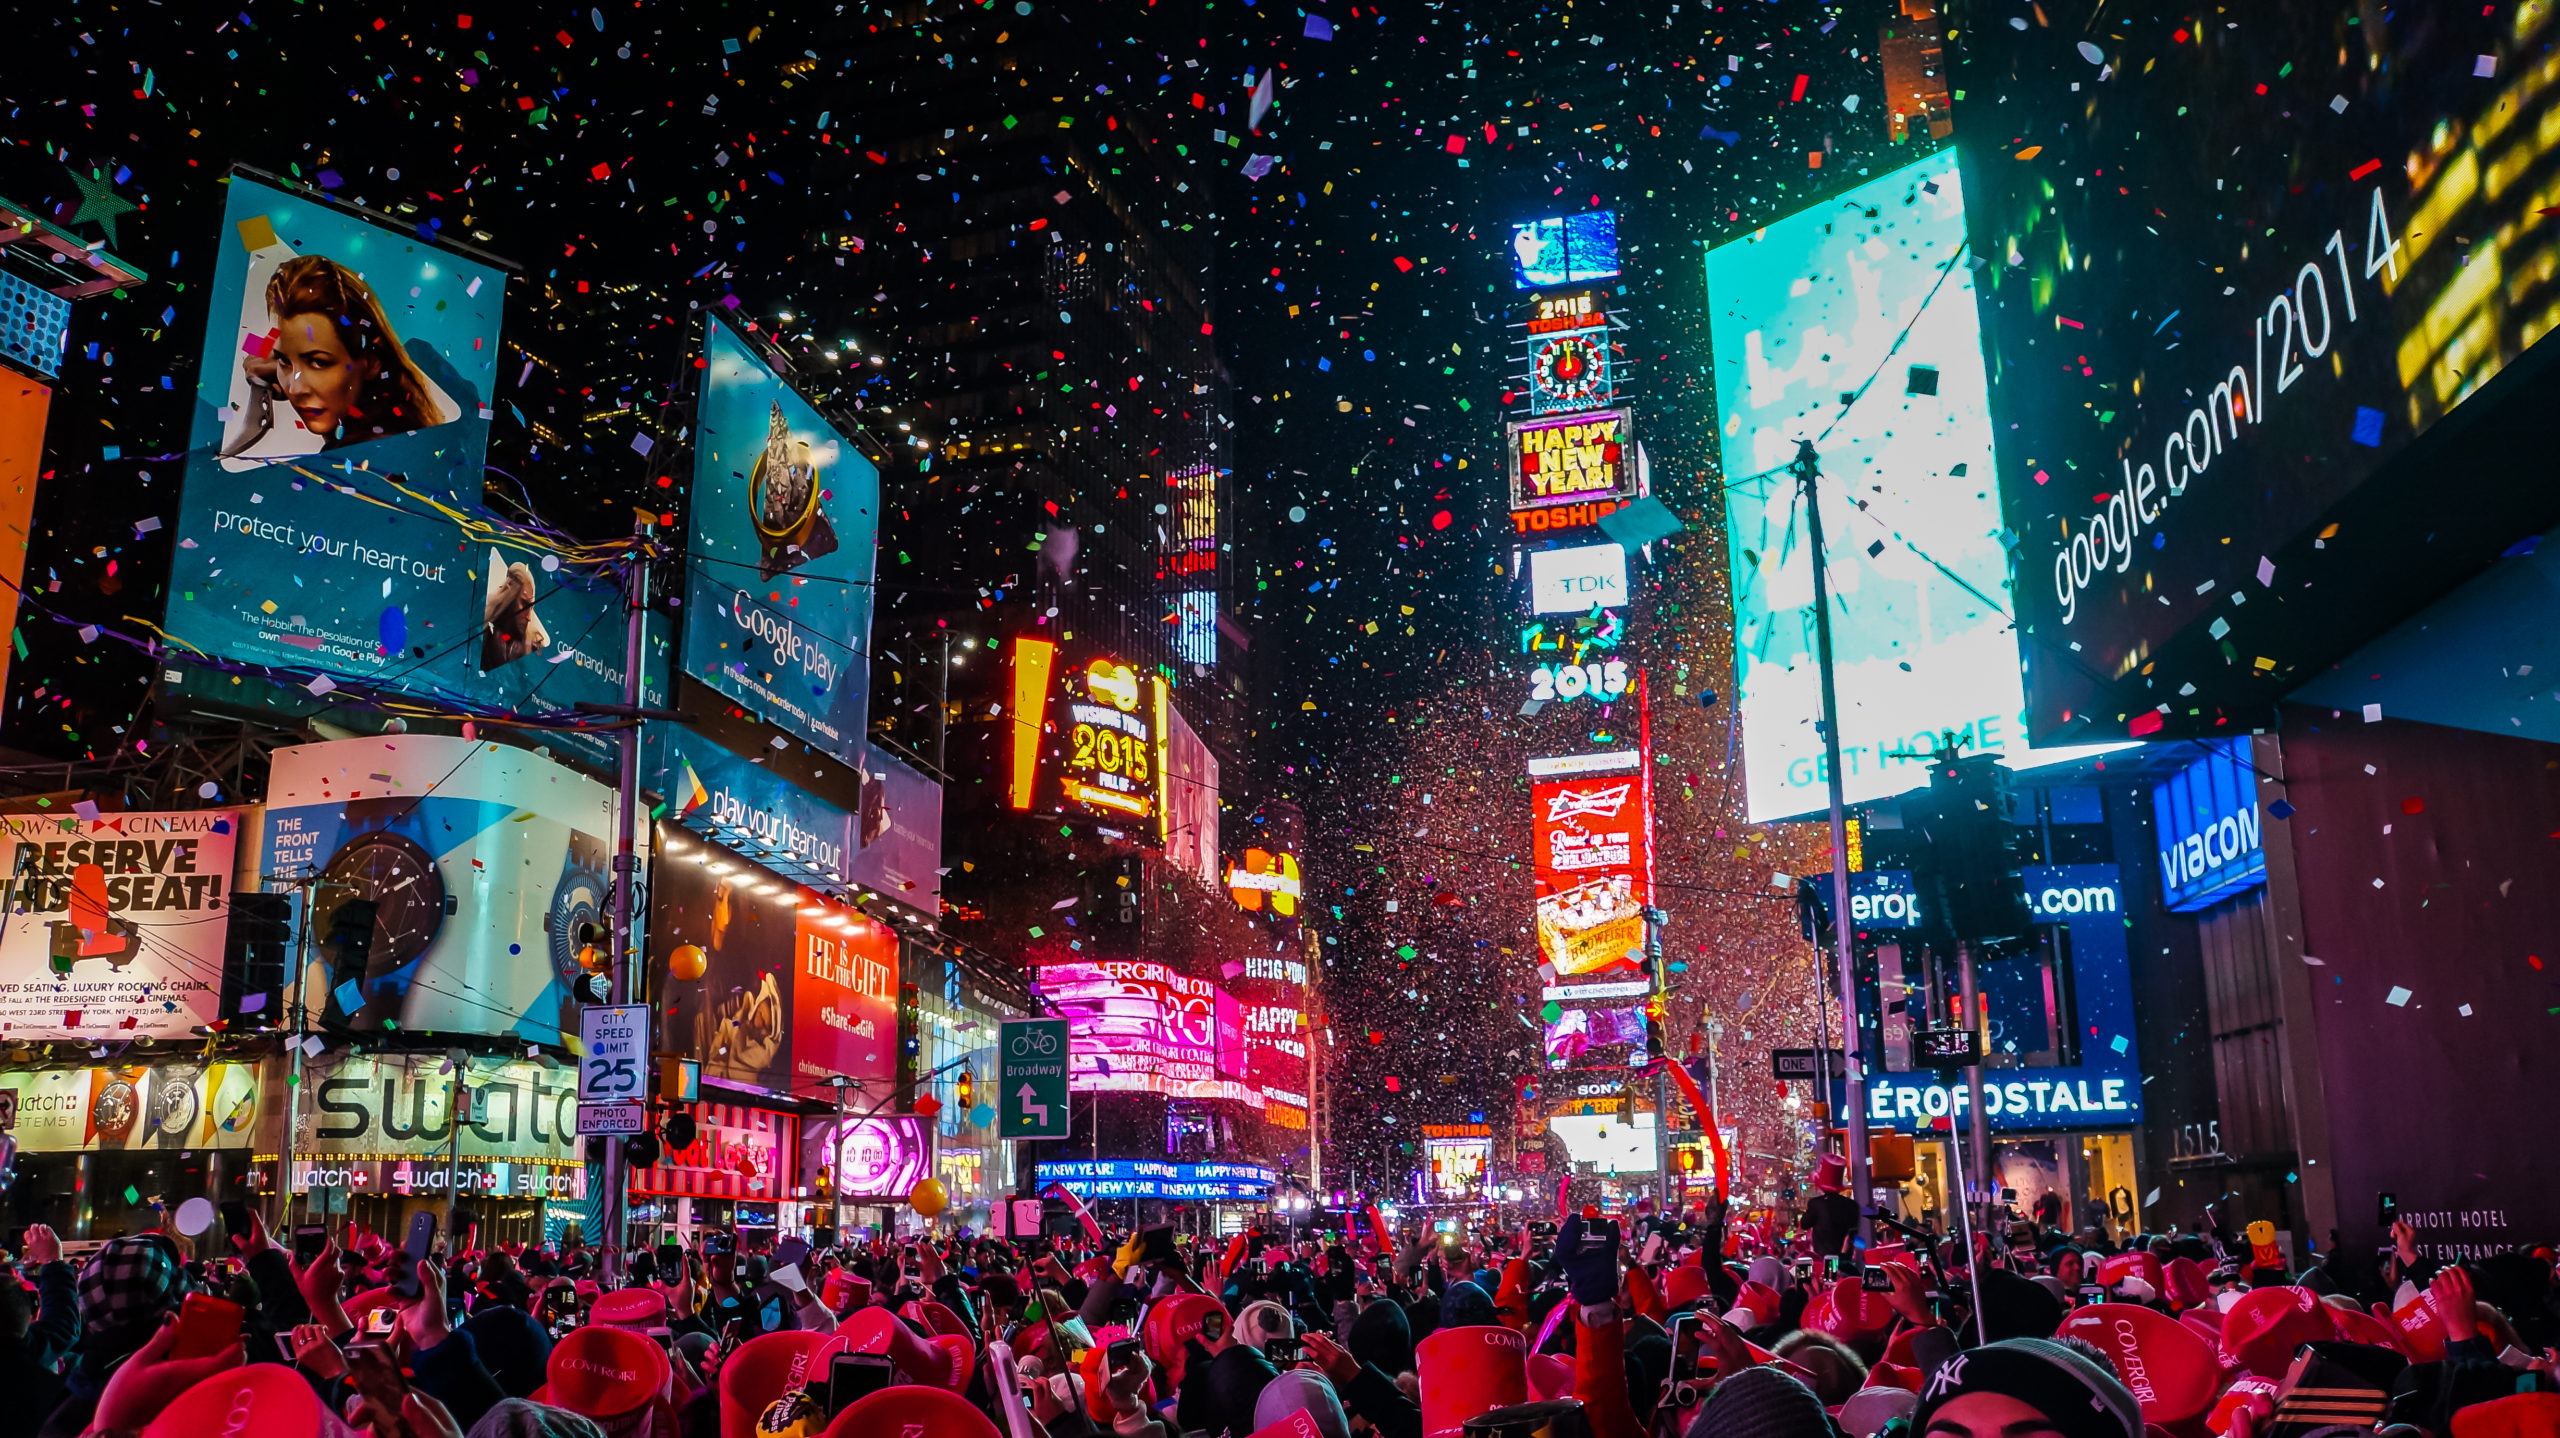 Top 10 Destinations for New Year's Eve Celebrations